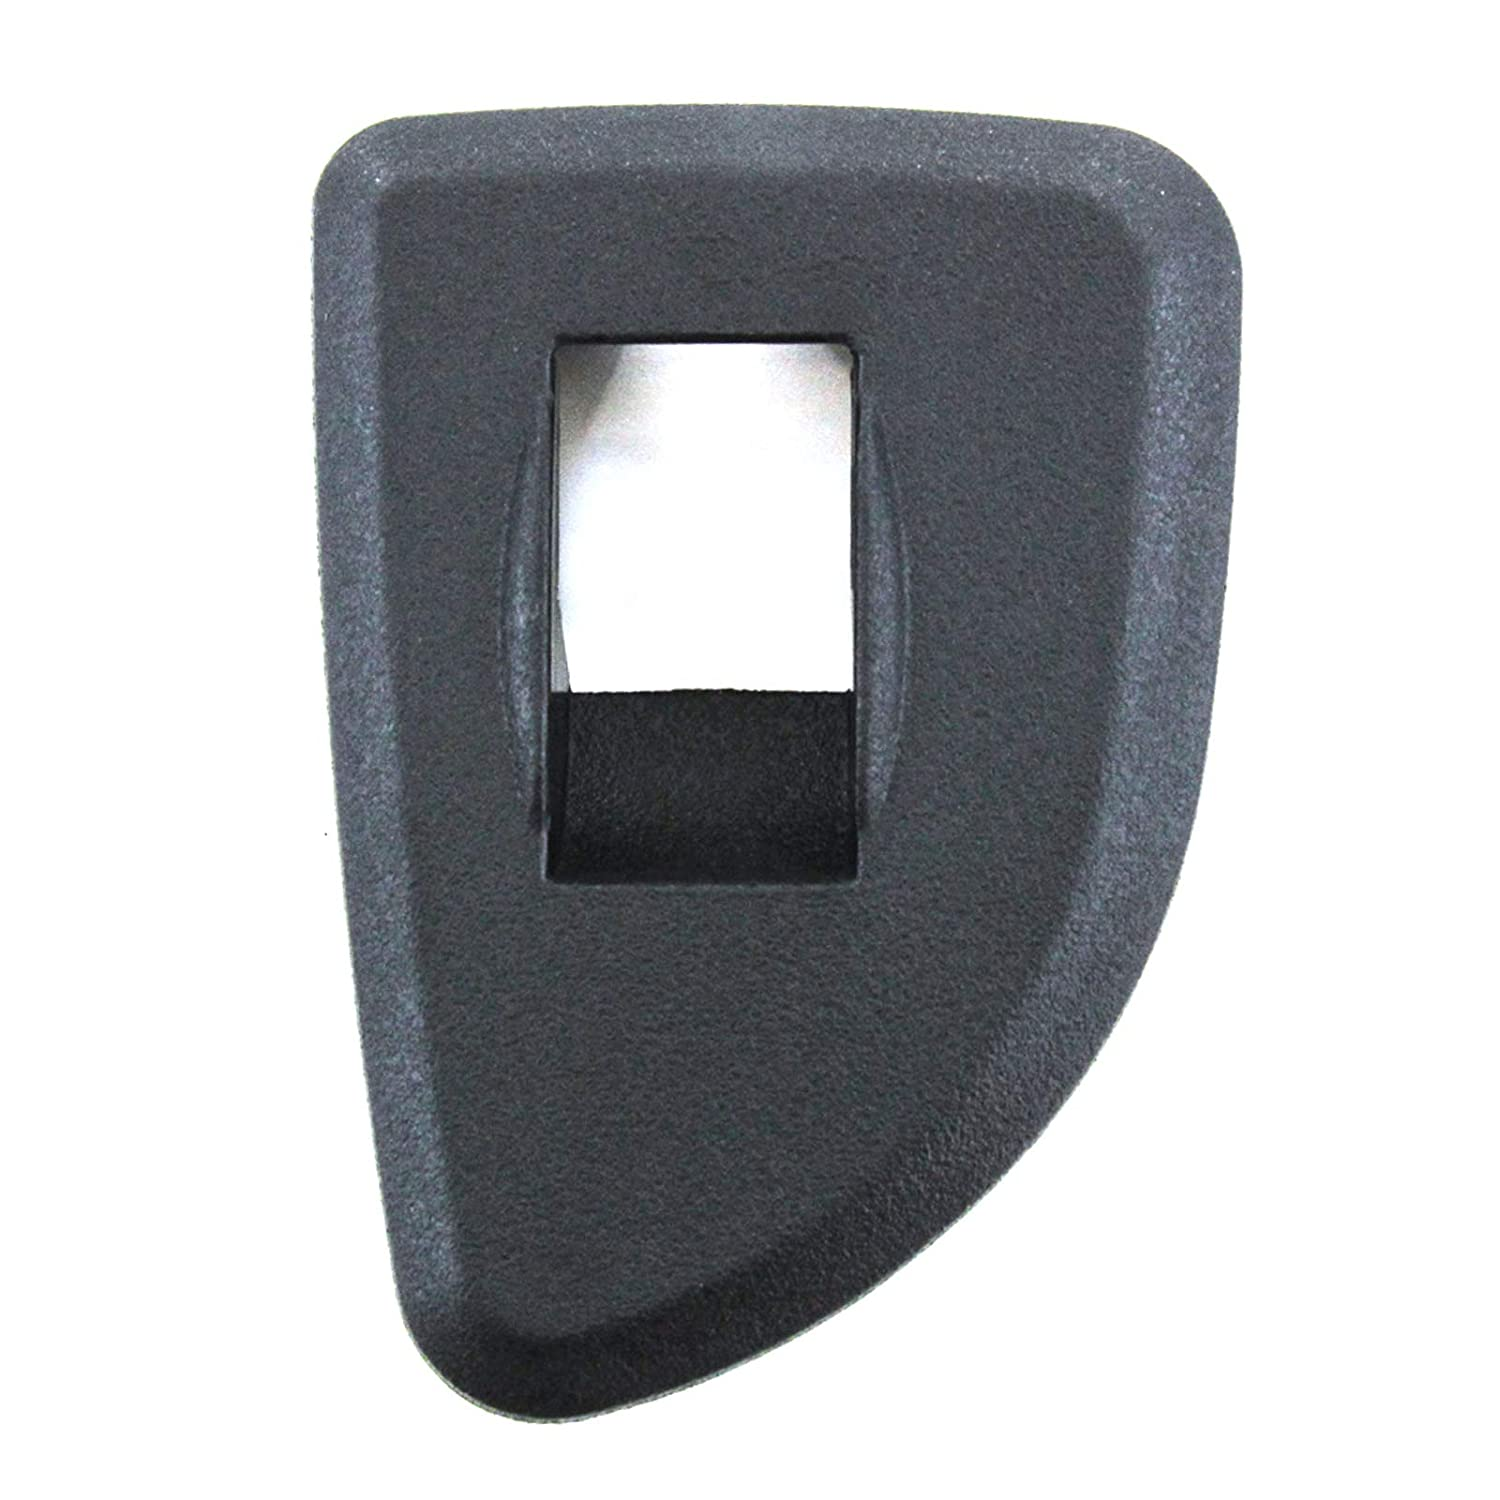 Red Hound Auto Rear Window Switch Bezel Driver Side Left LH for 2009-2013 Compatible with Chevrolet//GMC Silverado//Sierra 1500//2500HD//3500HD Black